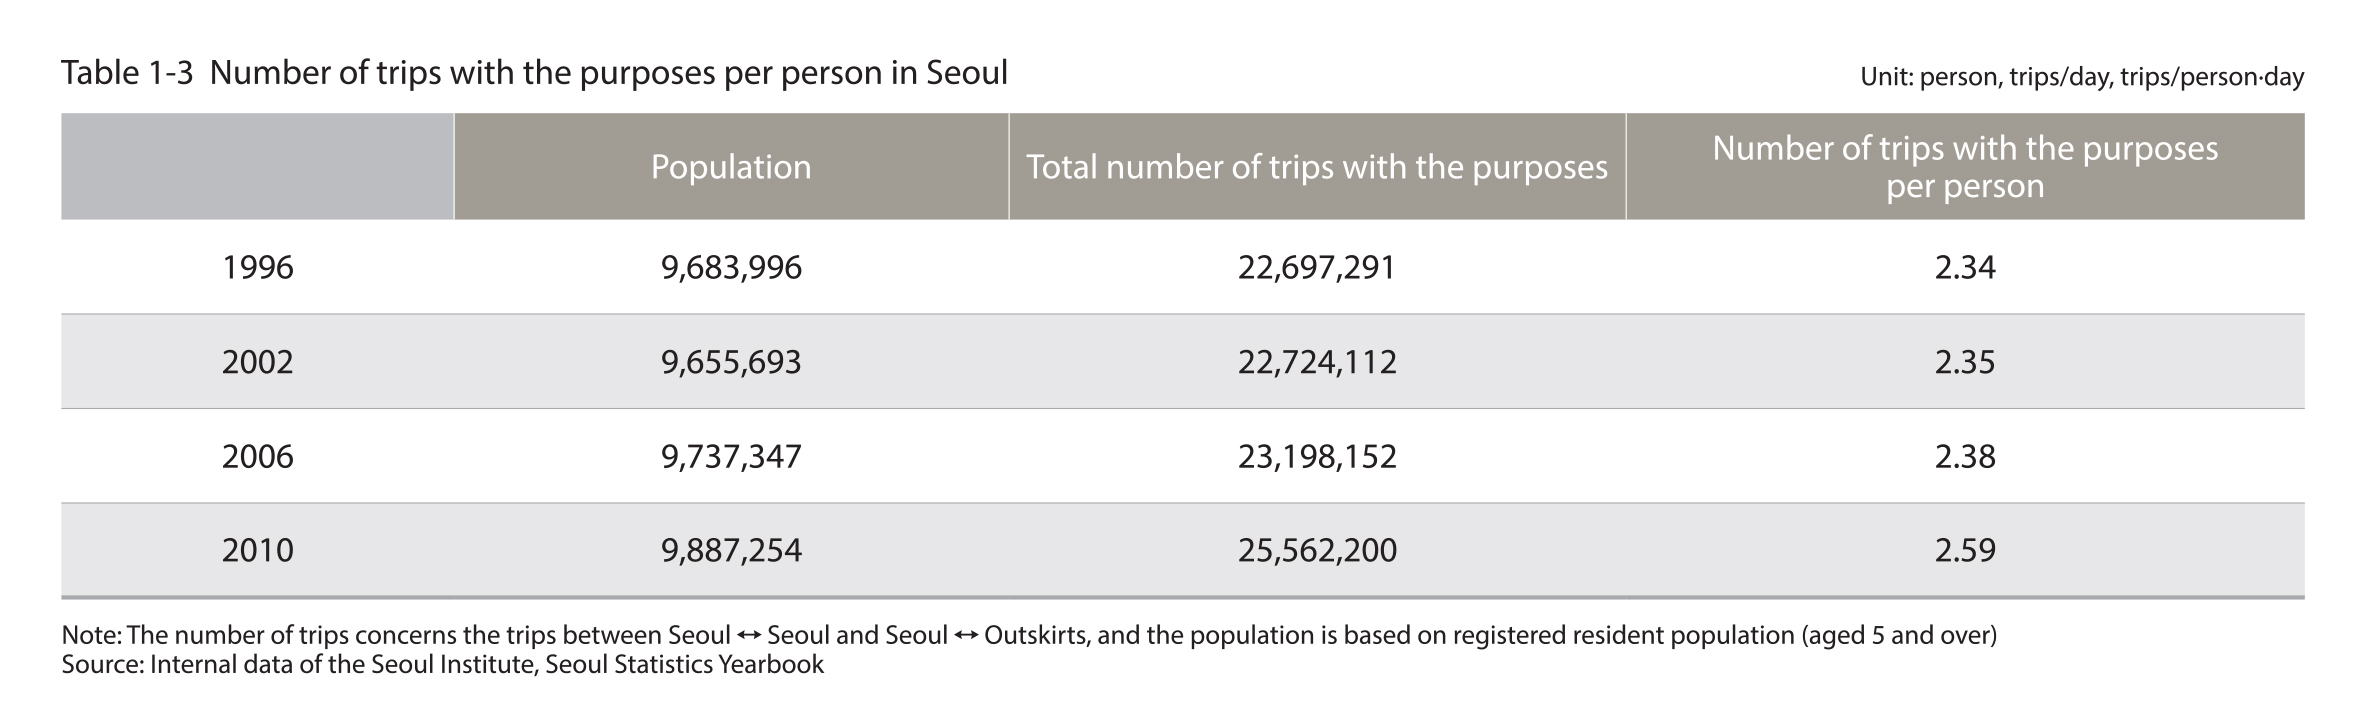 Number of trips with the purposes per person in Seoul